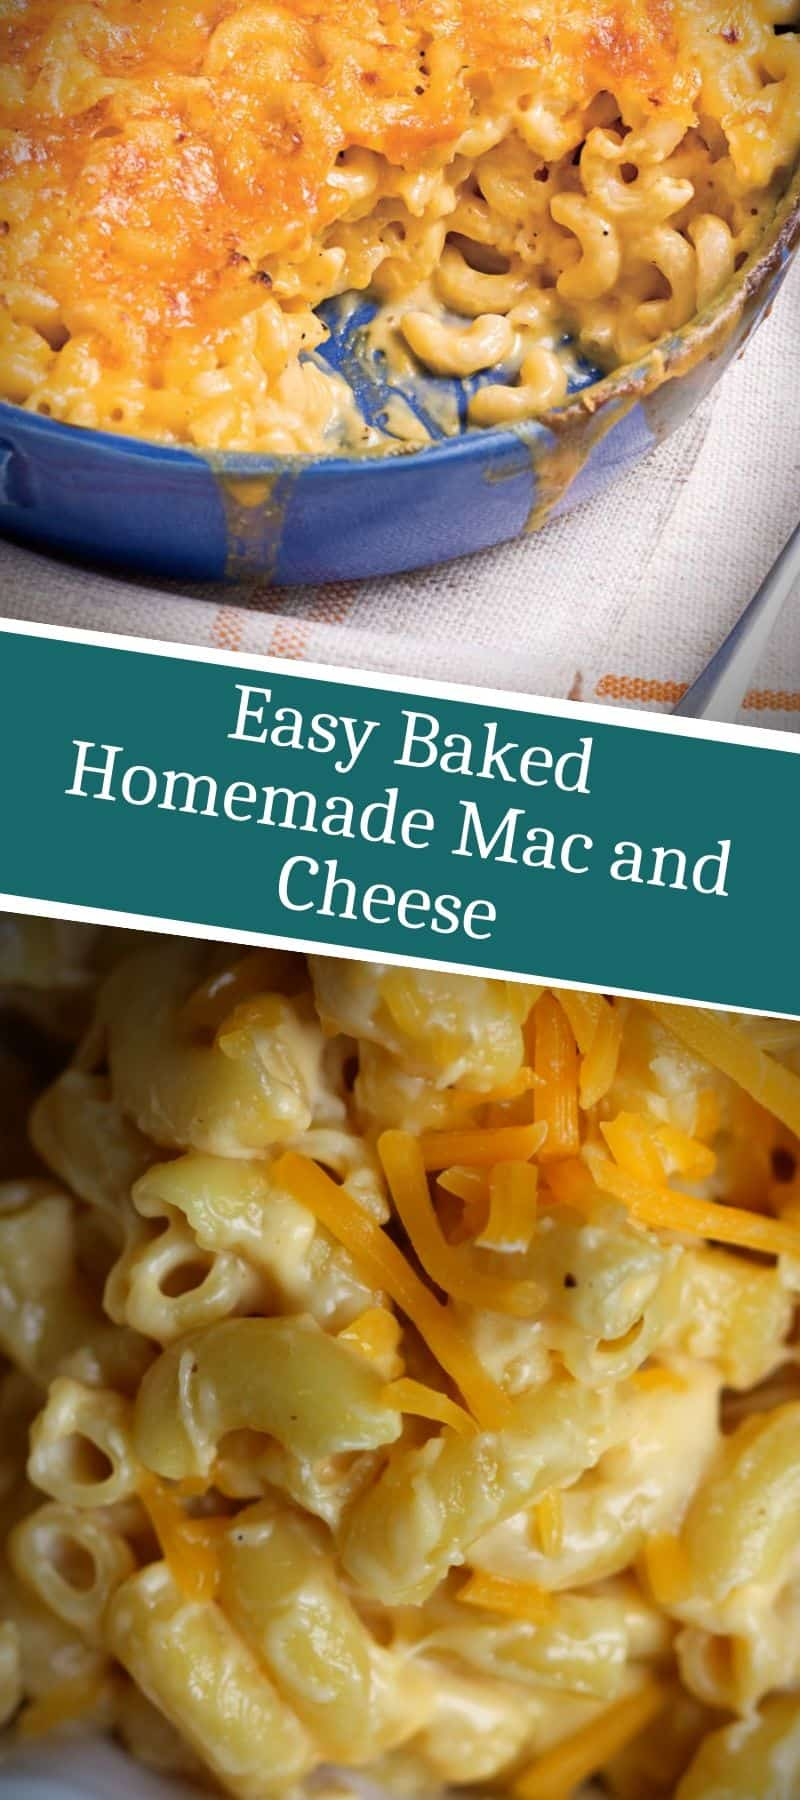 Easy Baked Homemade Mac and Cheese 3